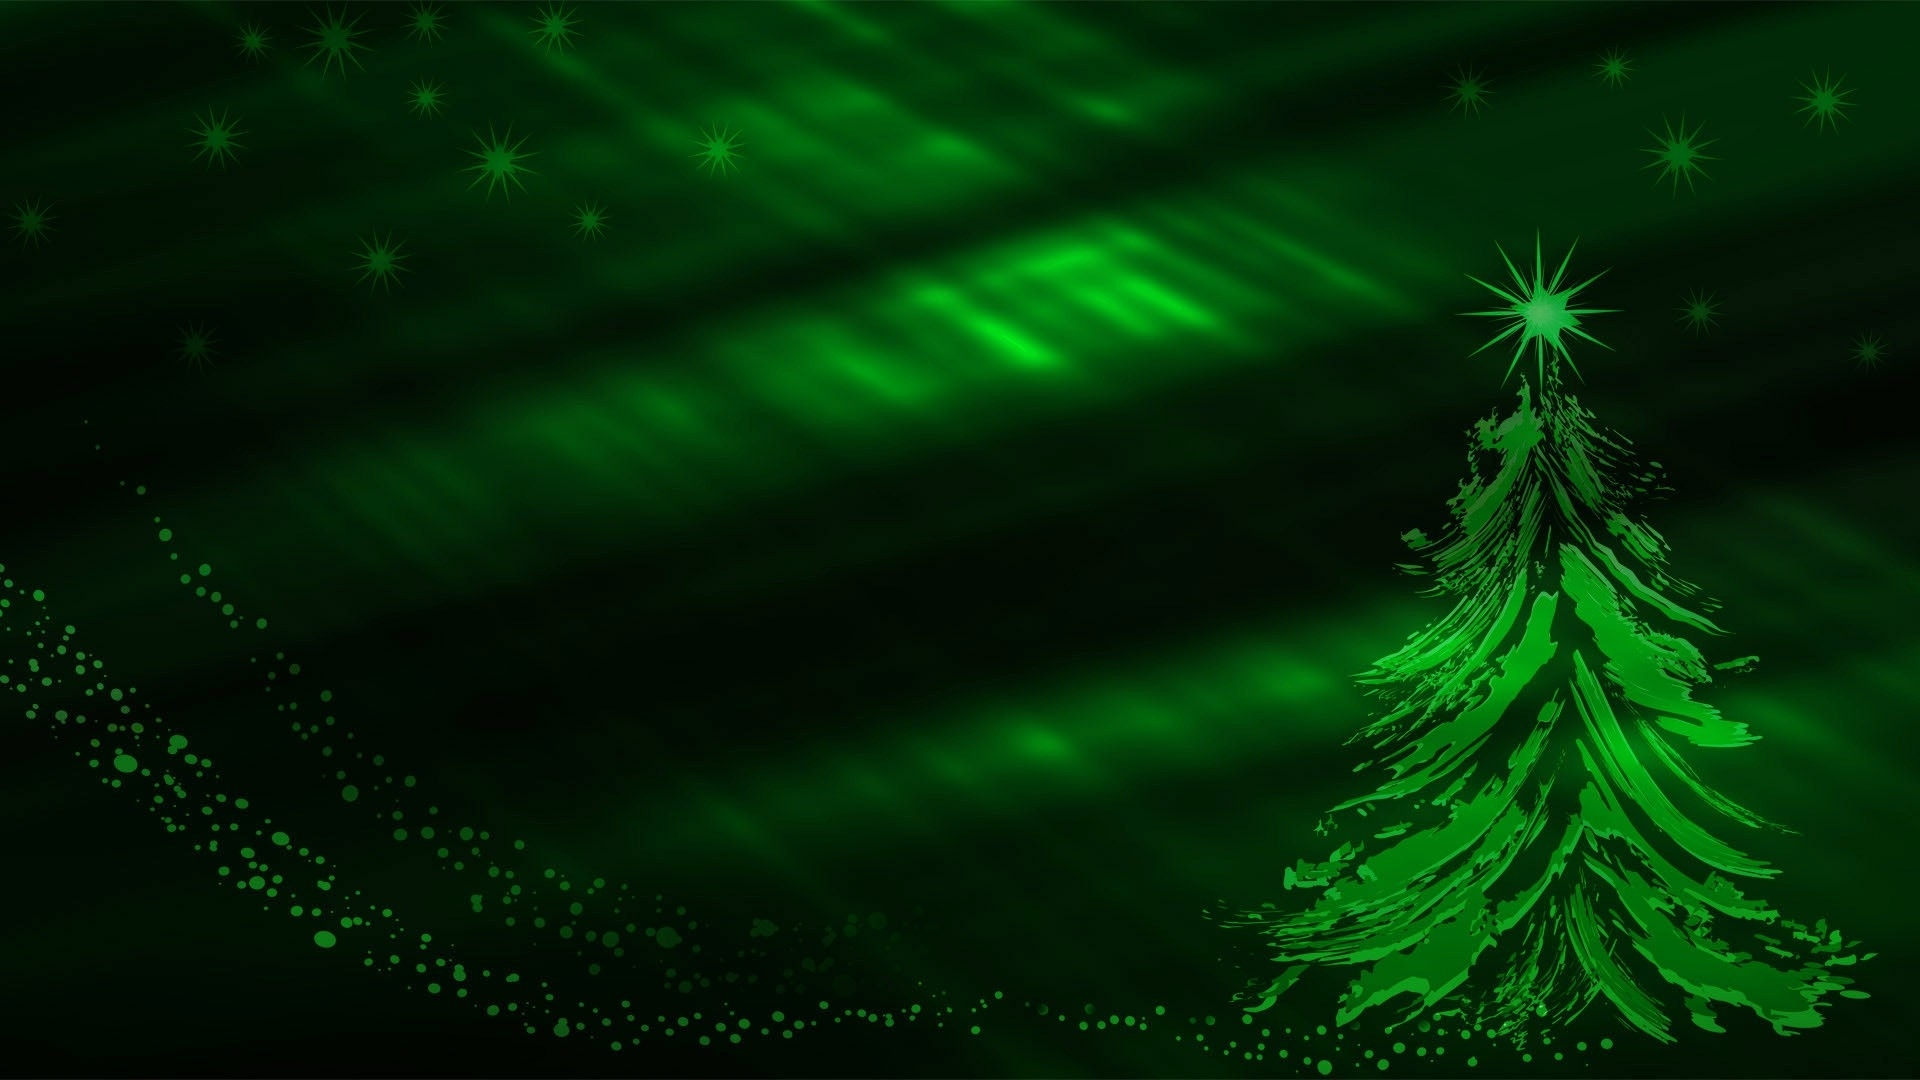 Christmas Background Christian.10 New Christian Christmas Backgrounds Free Full Hd 1920